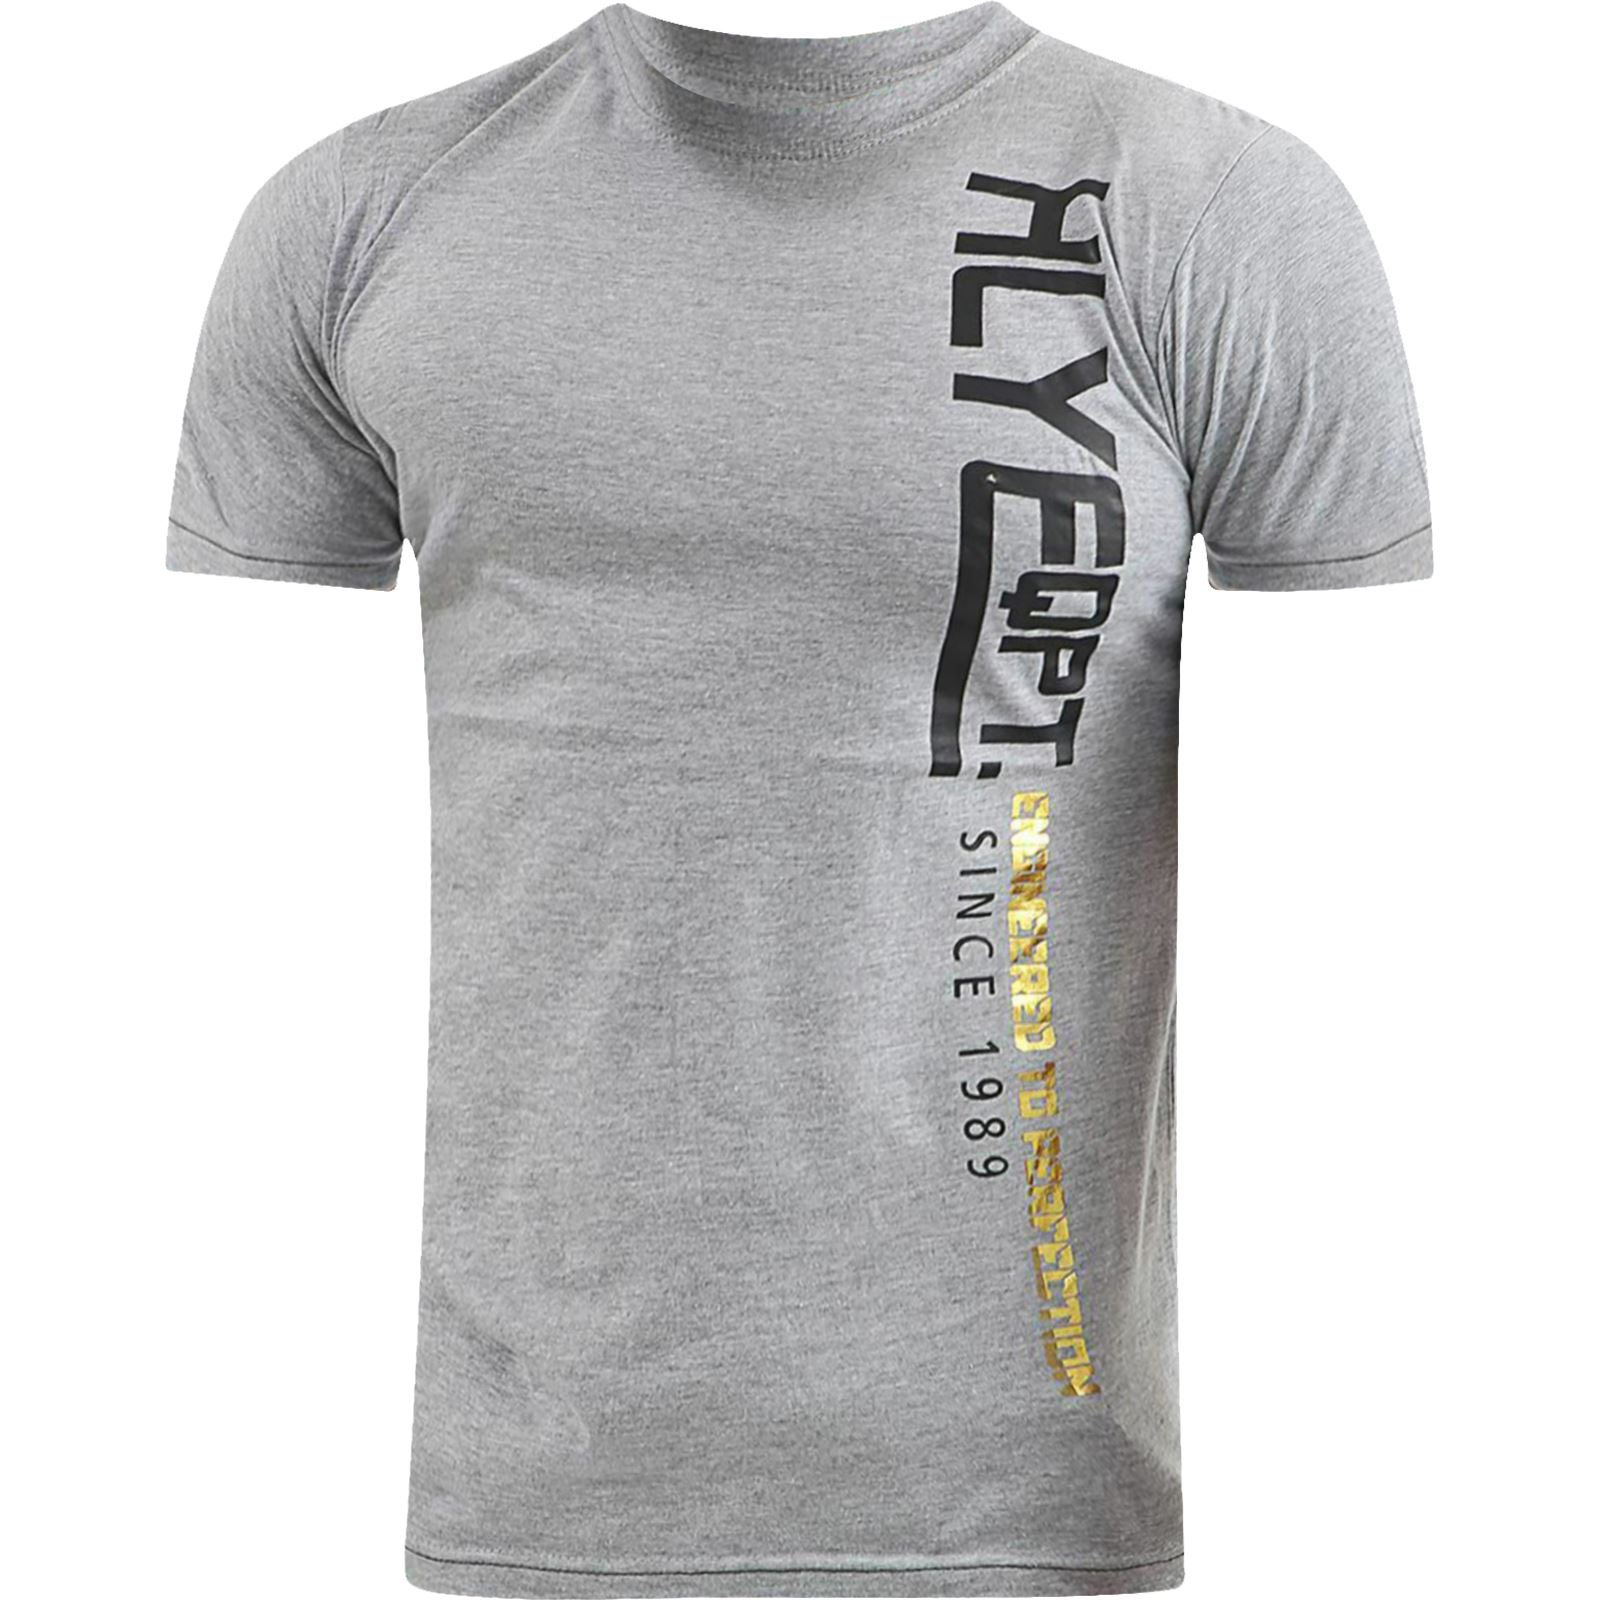 Mens-HLY-T-Shirt-Printed-Designer-100-Cotton-Gym-Athletic-Crew-Neck-Top-Tee thumbnail 16